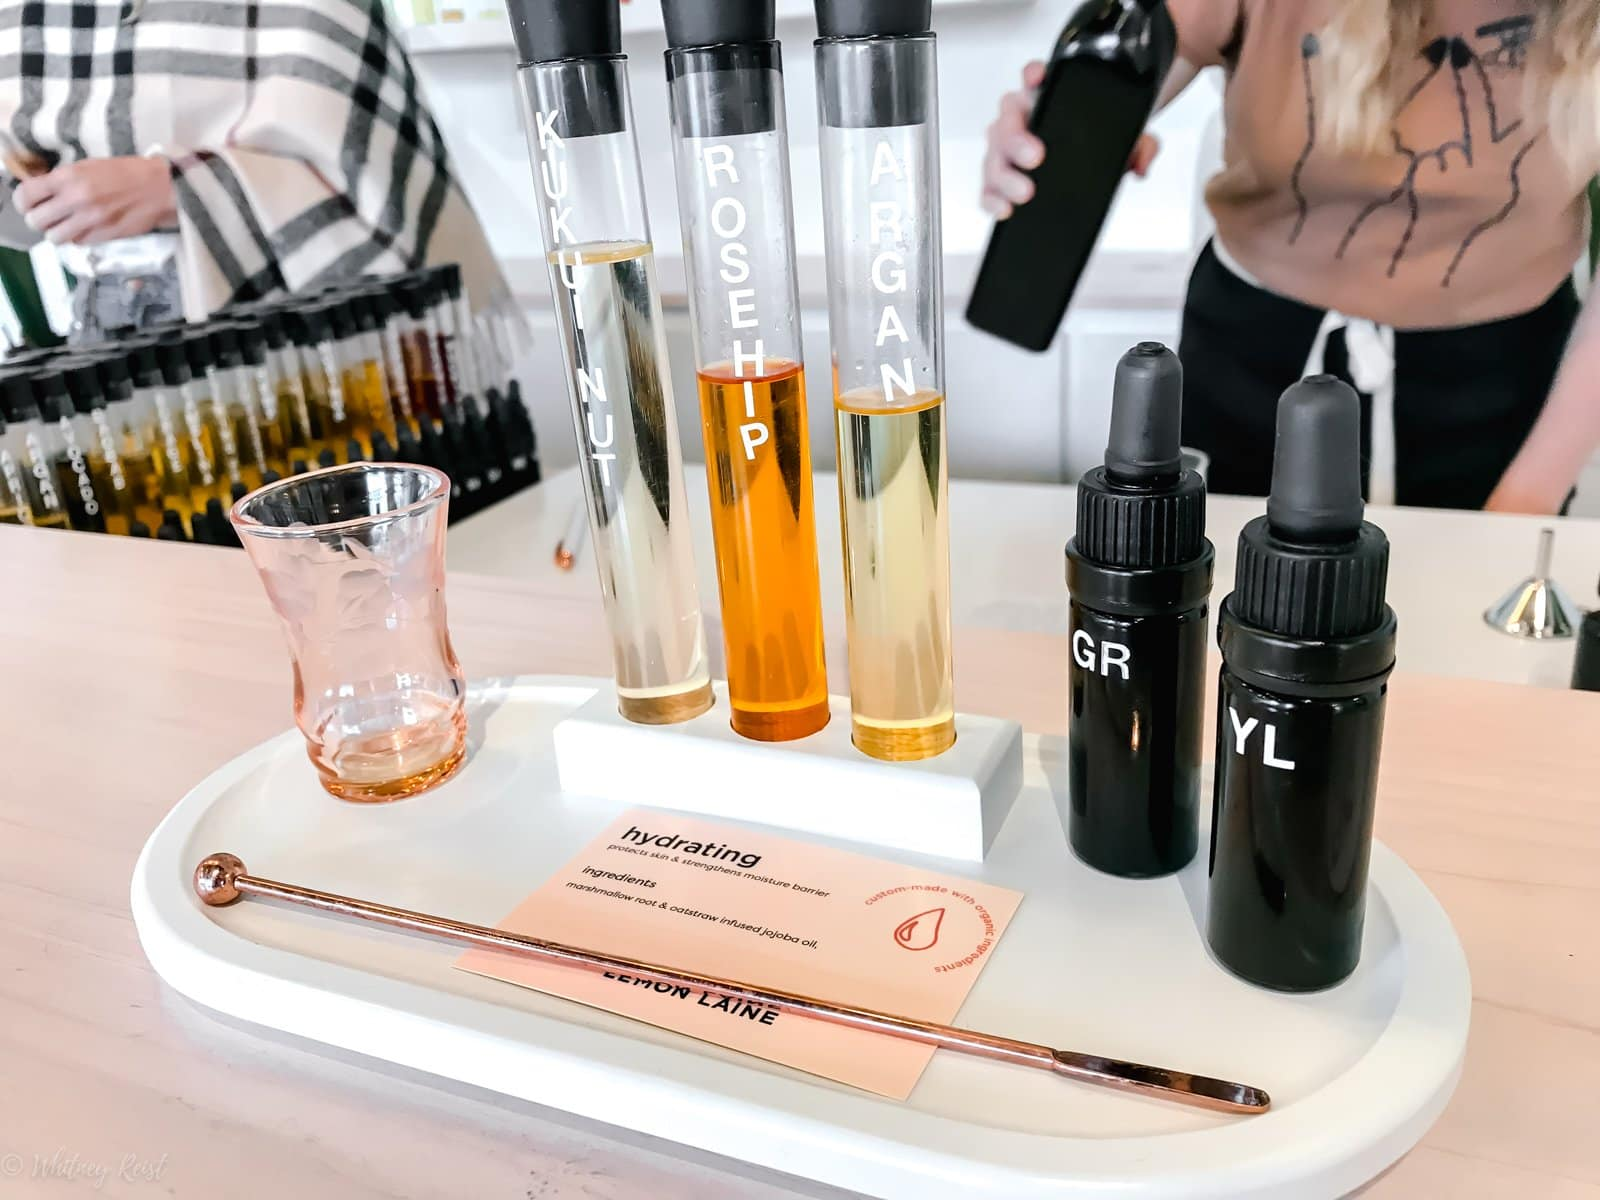 A tray with serums and ingredients and a mixer cup for making a custom facial oil.